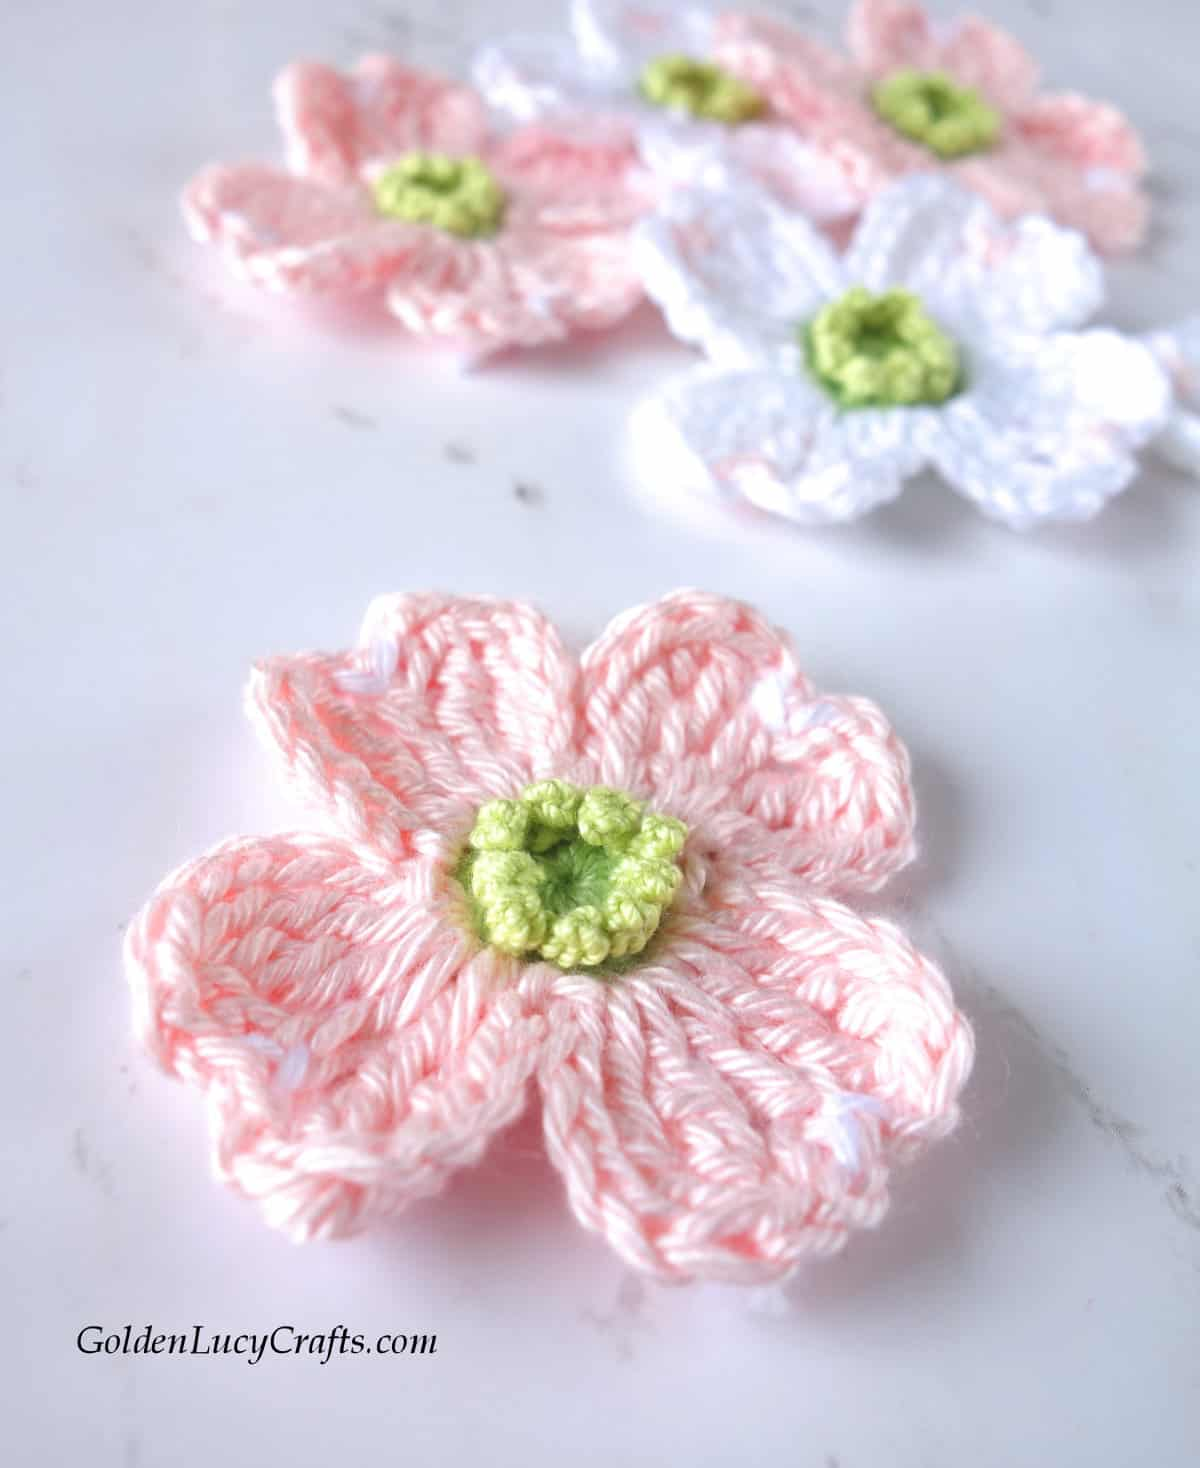 Crochet pink dogwood flower close up image.